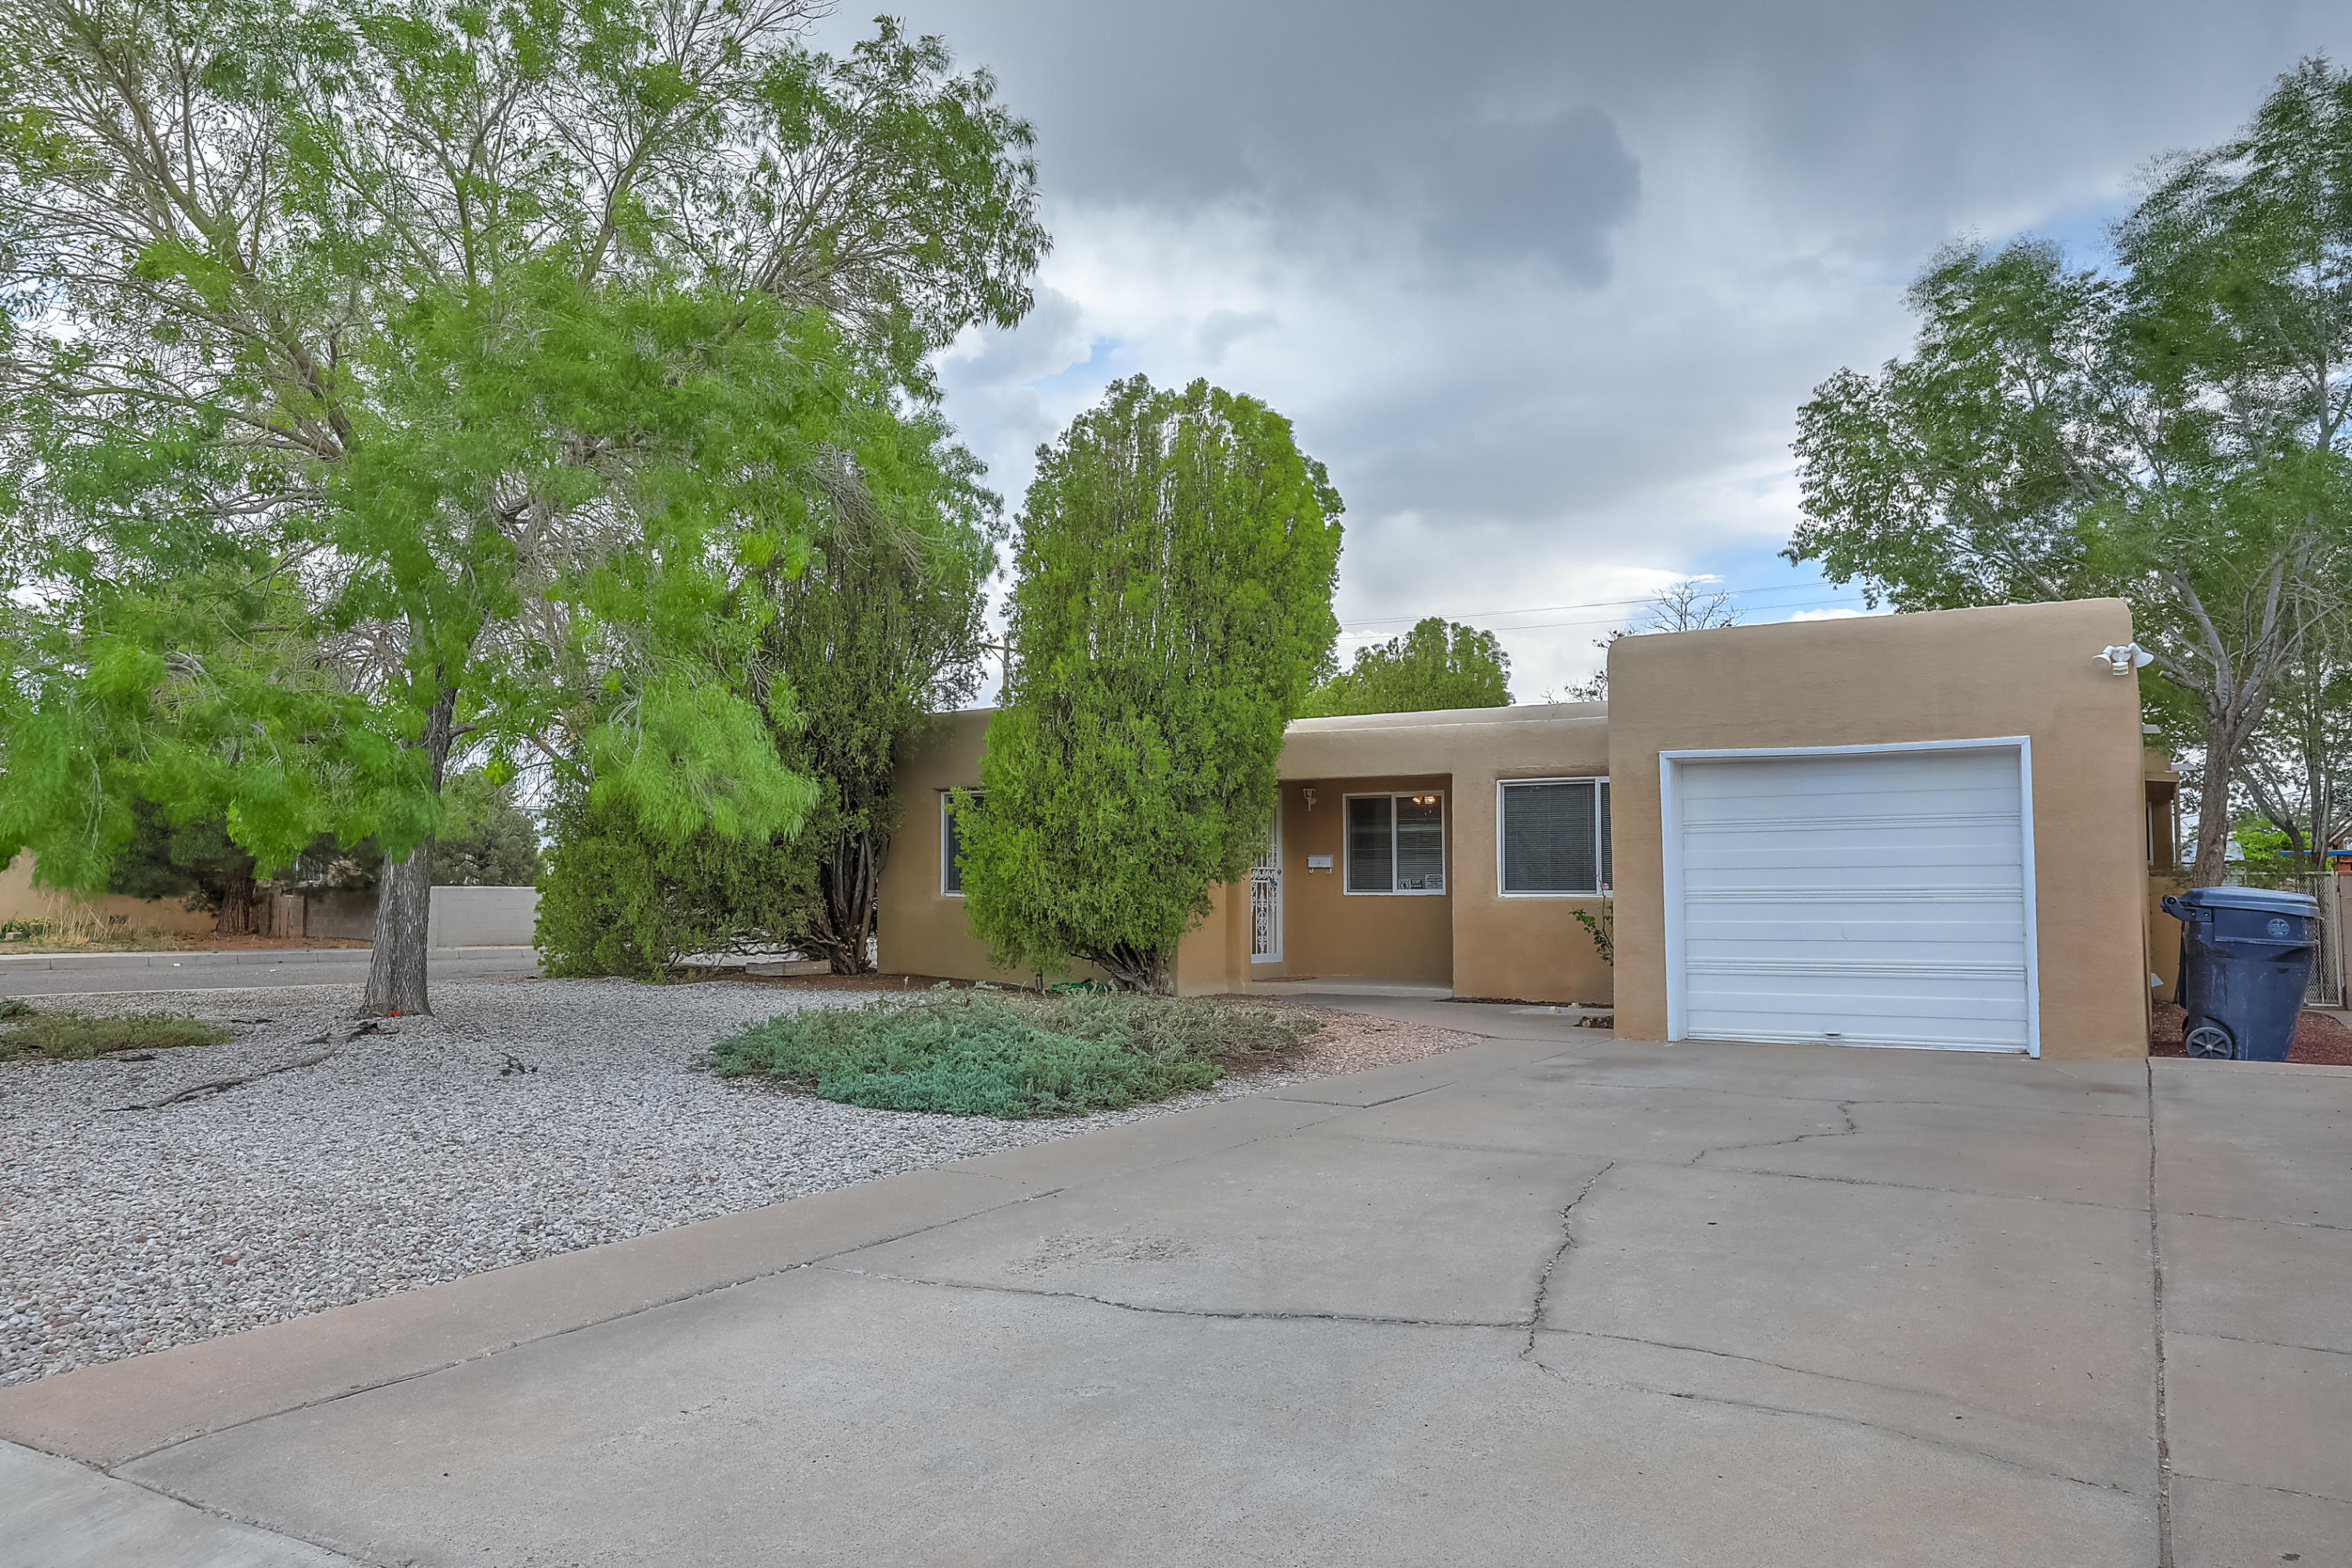 This property is centrally located to Uptown, Sandia National Labs, Kirtland AFB, UNM, and has easy access to I-40.Many updates to include newer carpet 10/20 and Kenmore dishwasher 03/21, newer electrical upgrade 04/21, roof maintenance and parapets 08/20, newer compressor in air conditioner 06/16, and newer trenchless main sewer line and cleanouts from house to sidewalk 06/18.  This floorplan has two living areas / formal dining, plus breakfast, 3 bedrooms, 2 full baths and a 3/4 bath, and two of the bedrooms counting the master bedroom have walk-in closets, with the master's being a cedar closet. There are arched doorways in living room and dining and a sunny and bright kitchen that any chef would want to cook in.